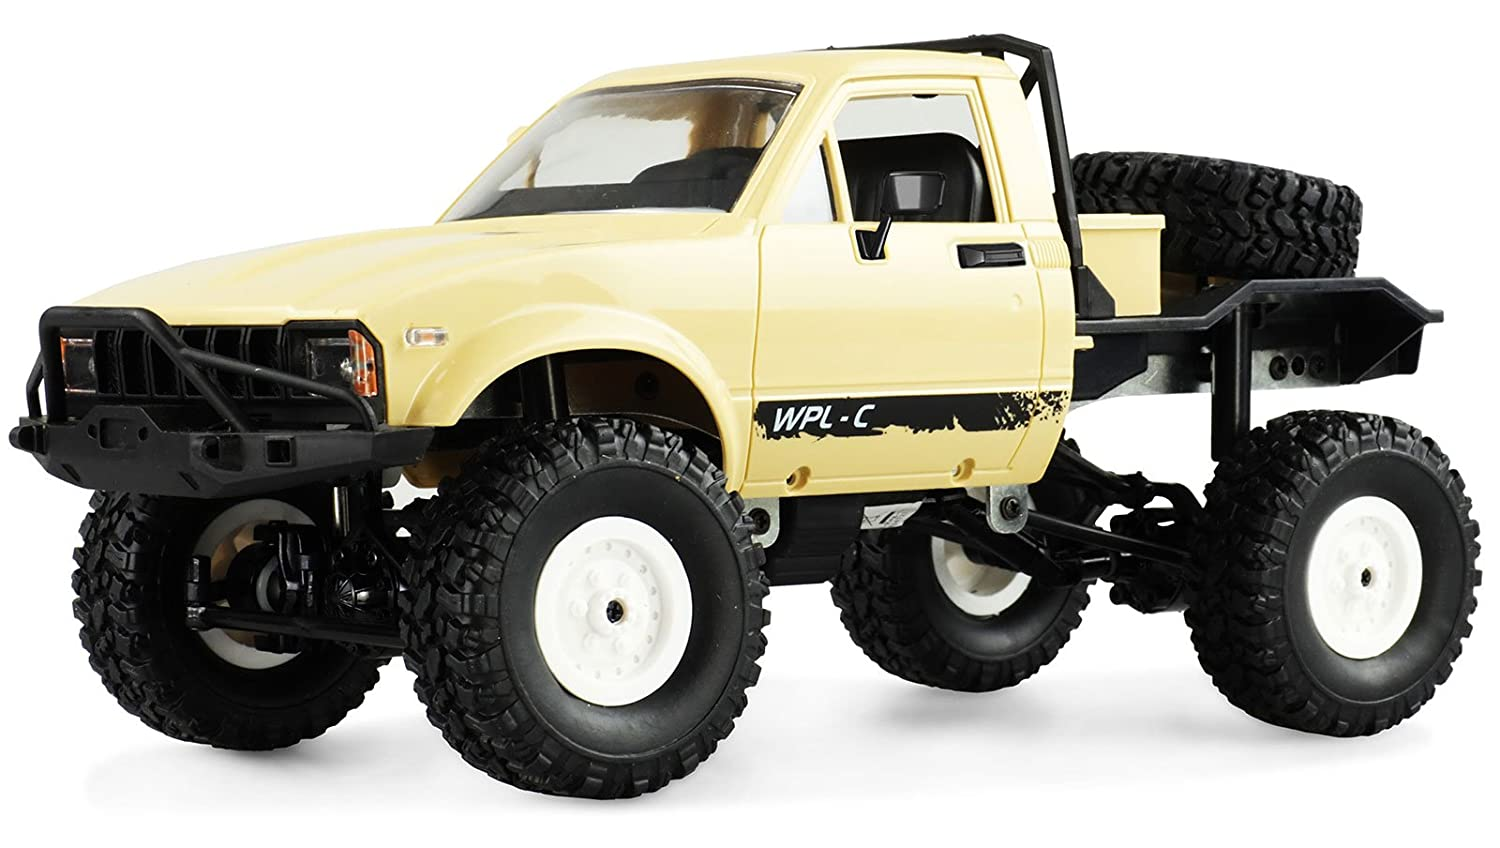 Amewi 22326 Pick Up Truck 4 WD 1  16 RTR veicolo, Sand colorei